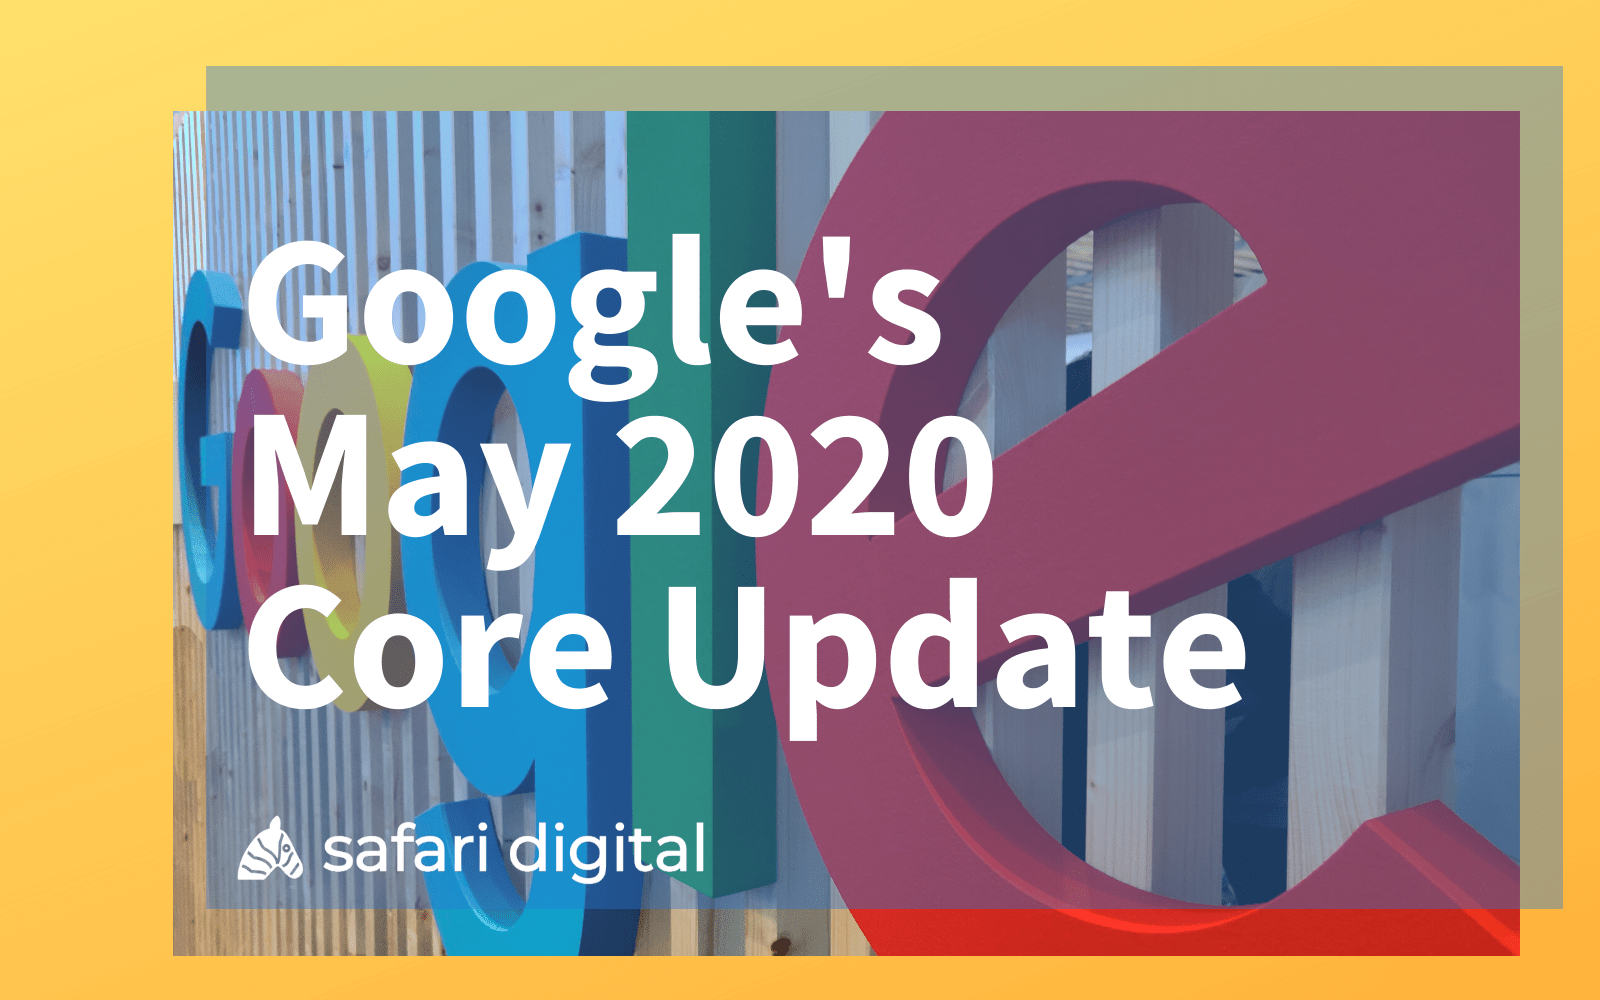 Google May 2020 Core Update large cover image